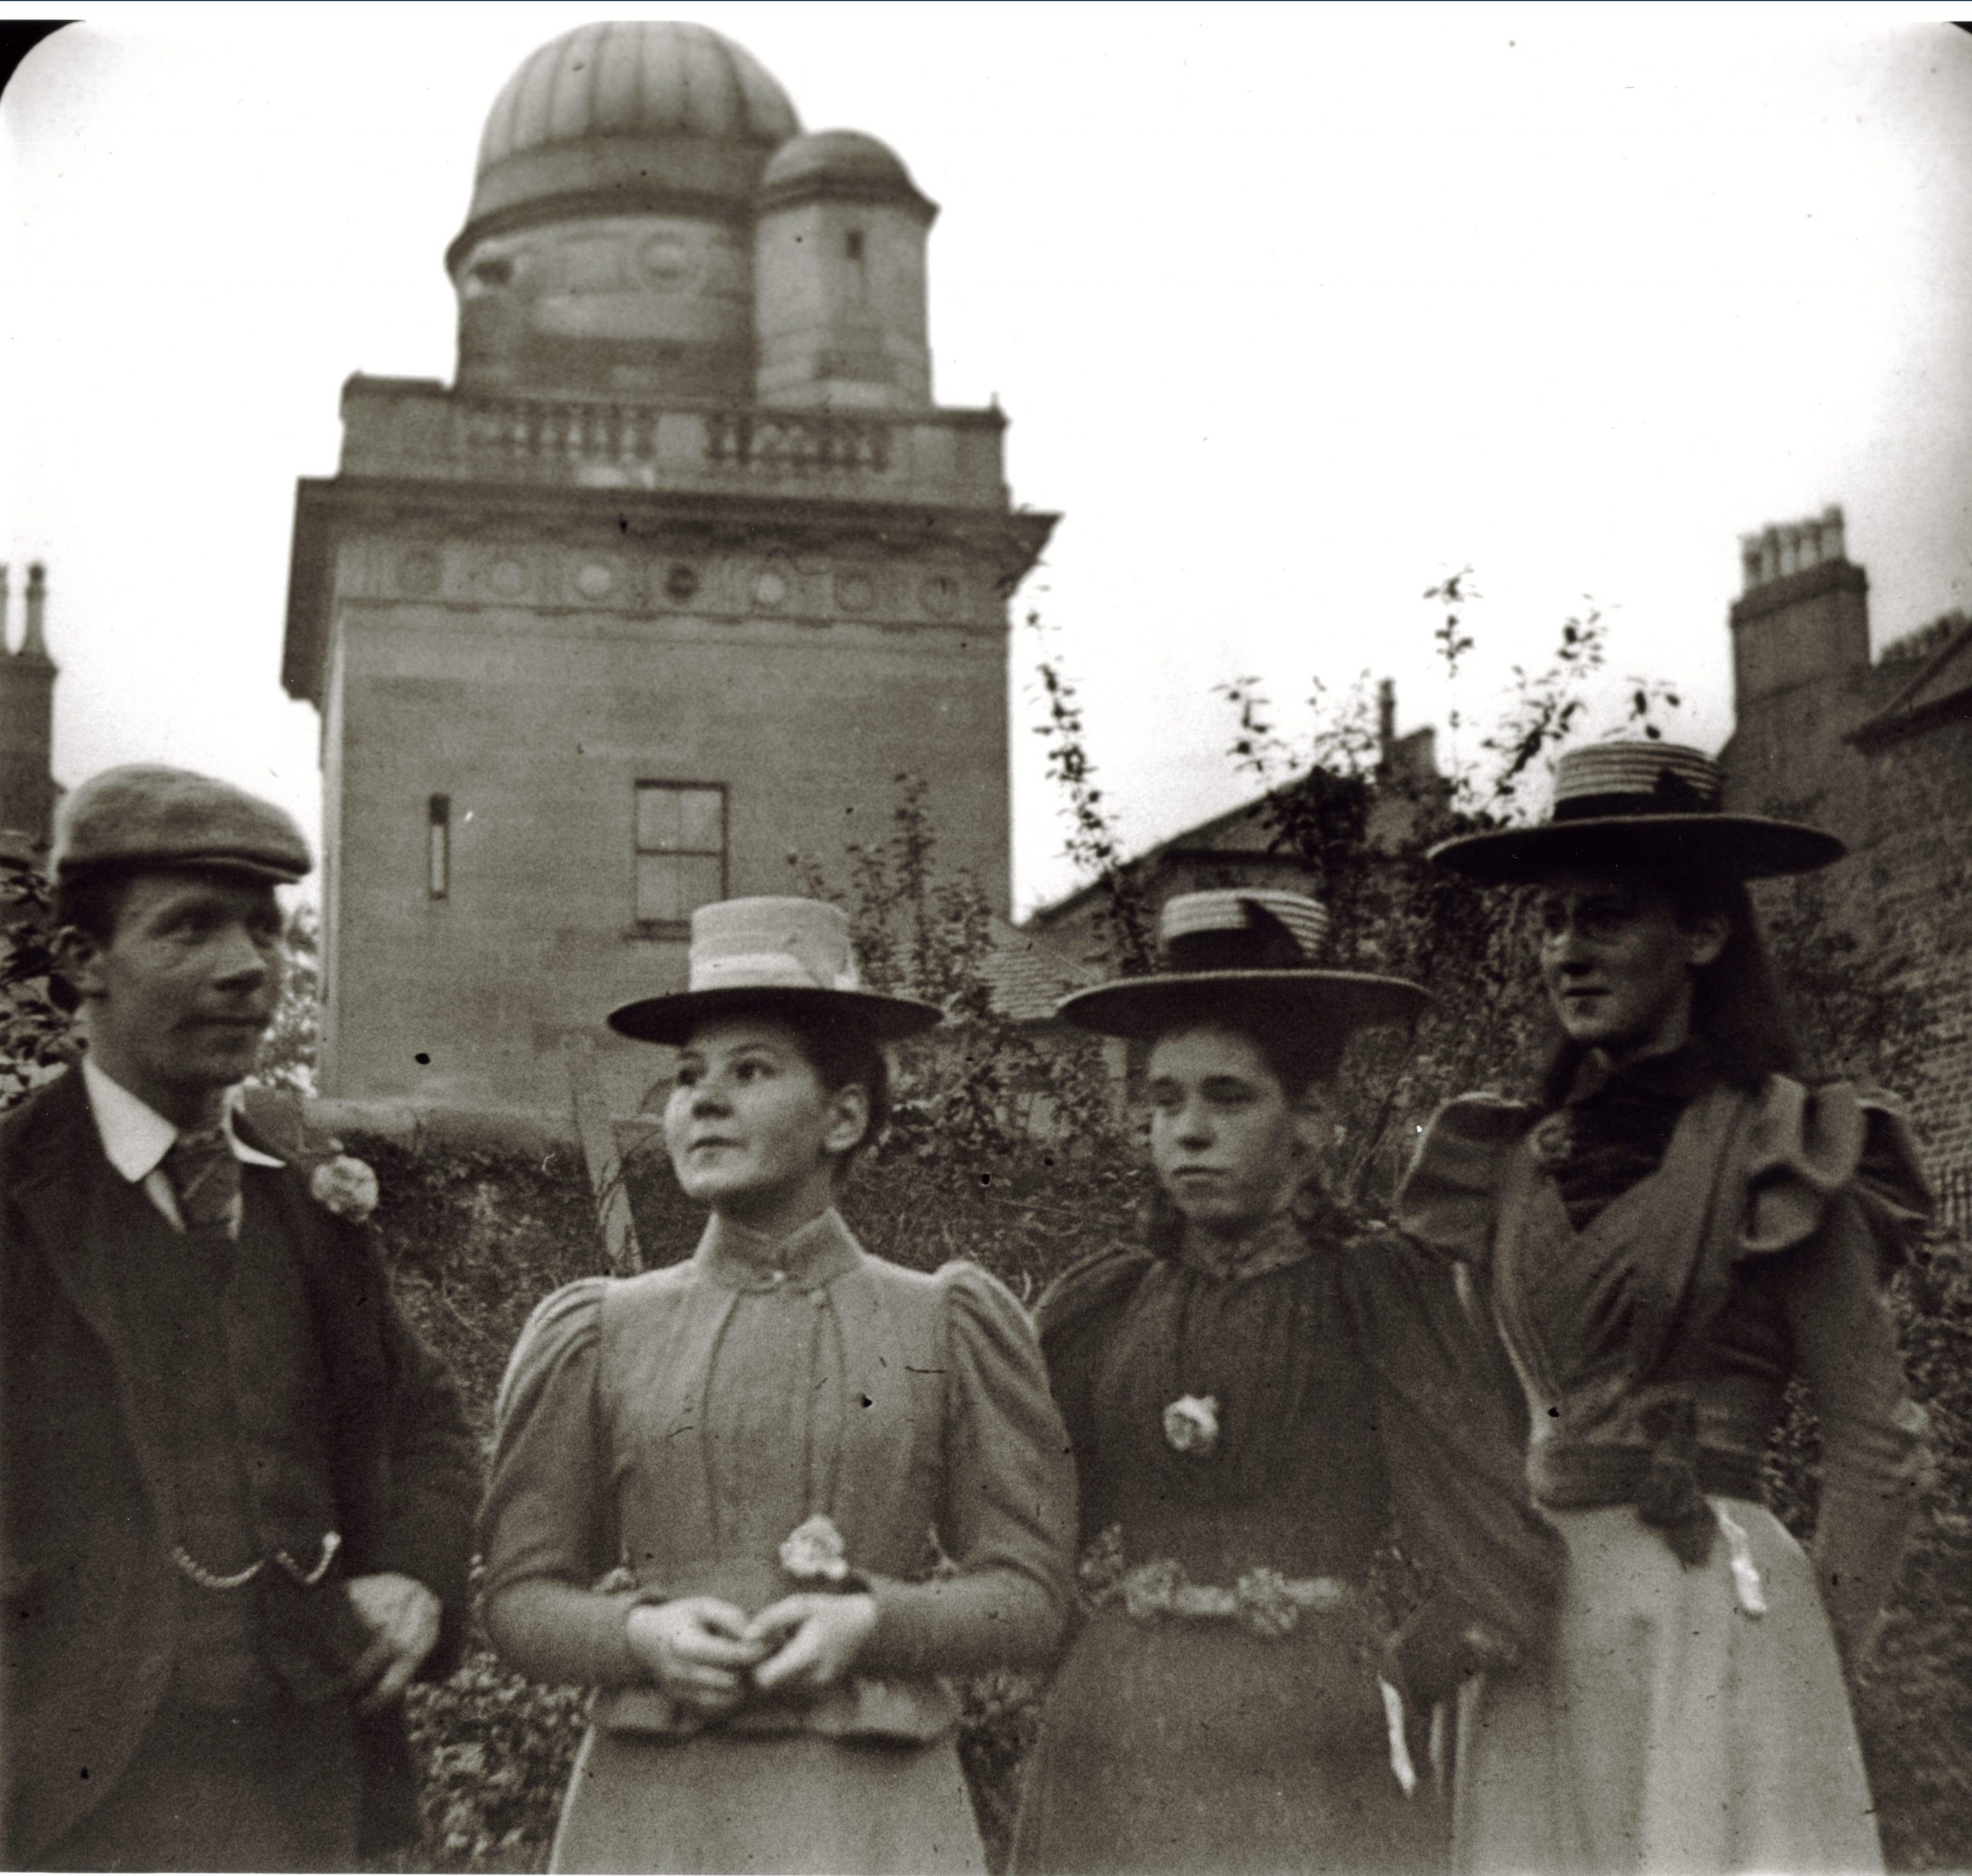 Late 19th century photograph of one man and three women outside the Coats Observatory